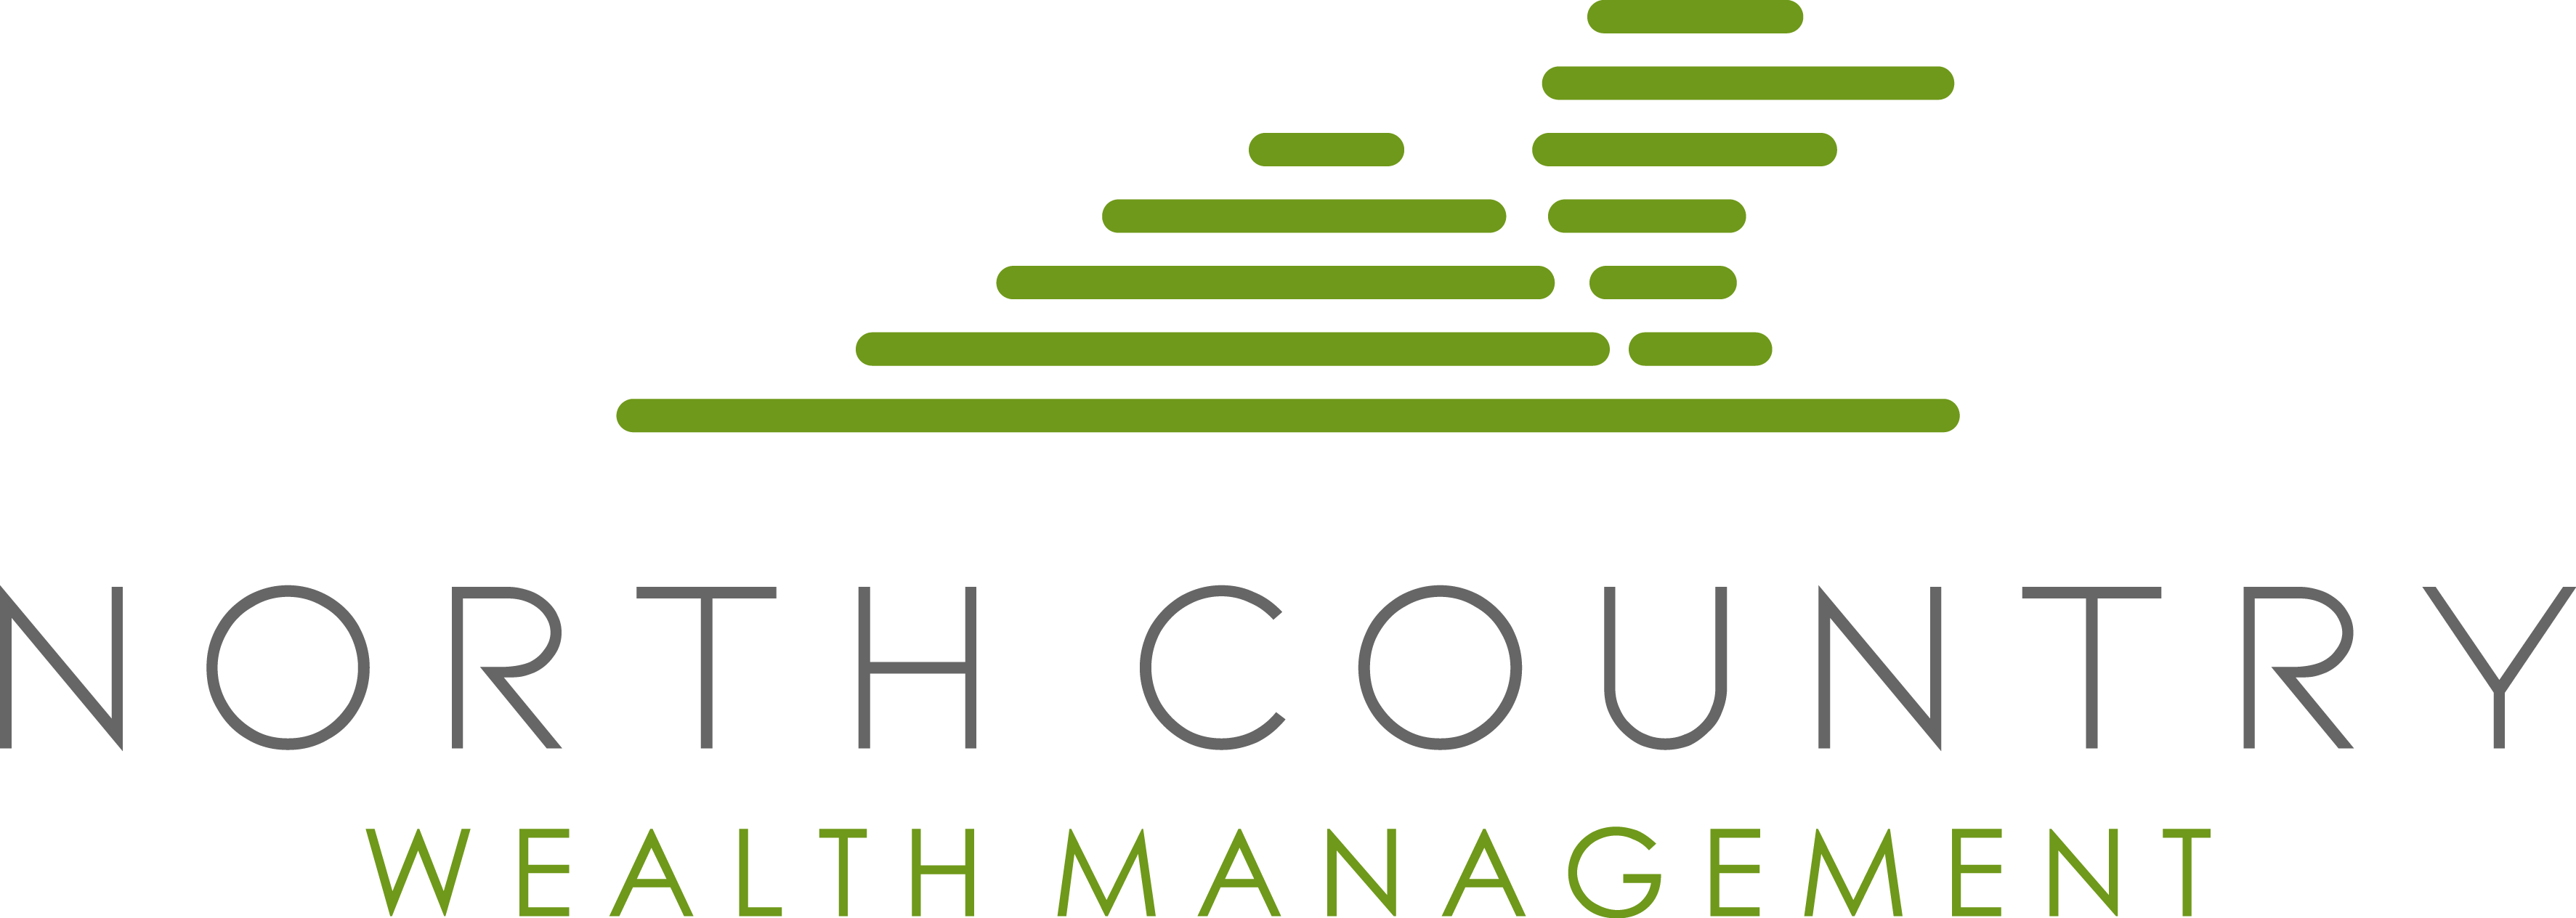 North Country Wealth Management